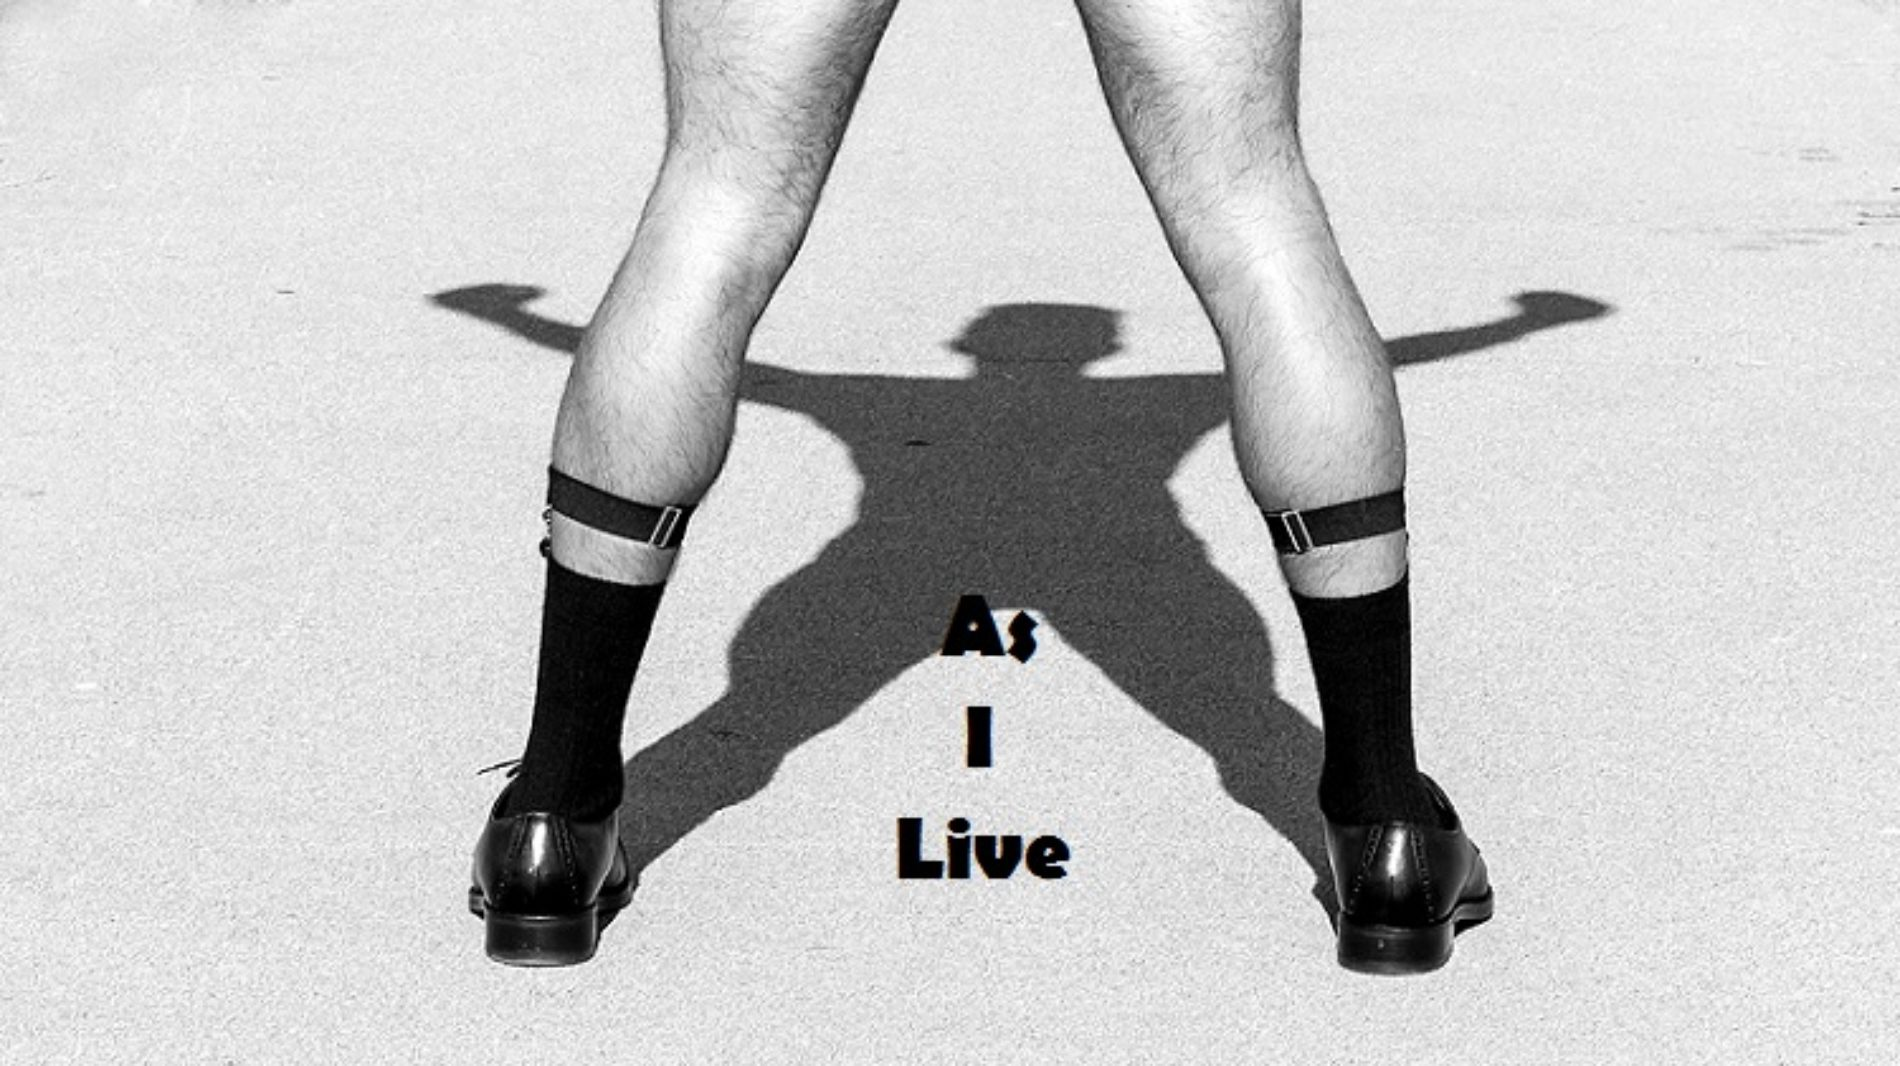 AS I LIVE: 6 (Bed of Lies)